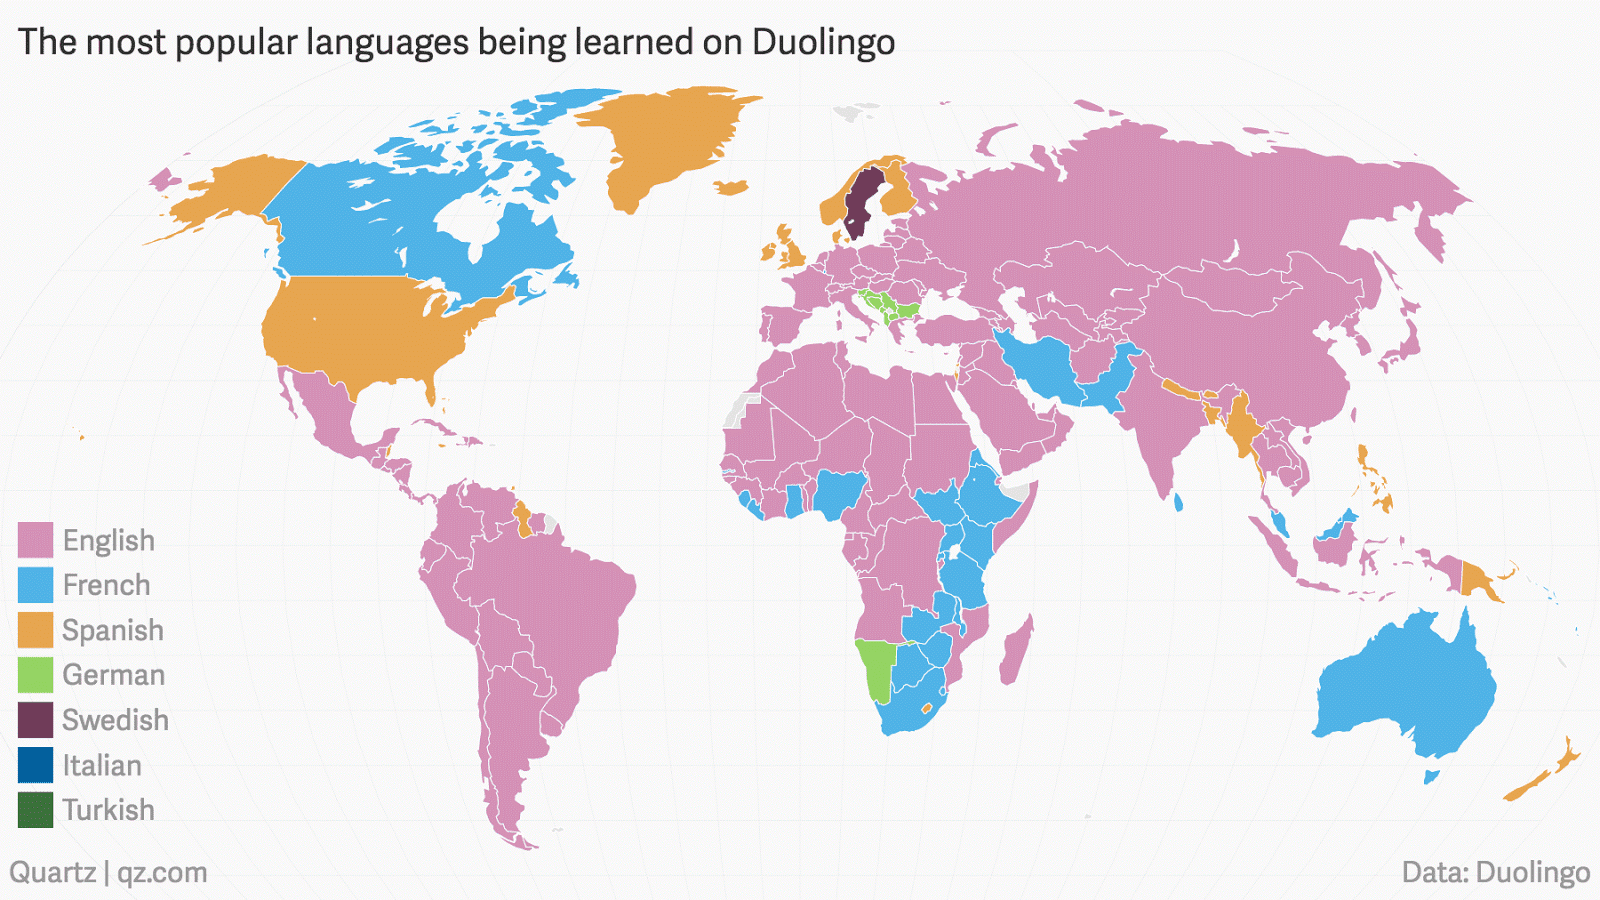 The most popular language on Duolingo by country